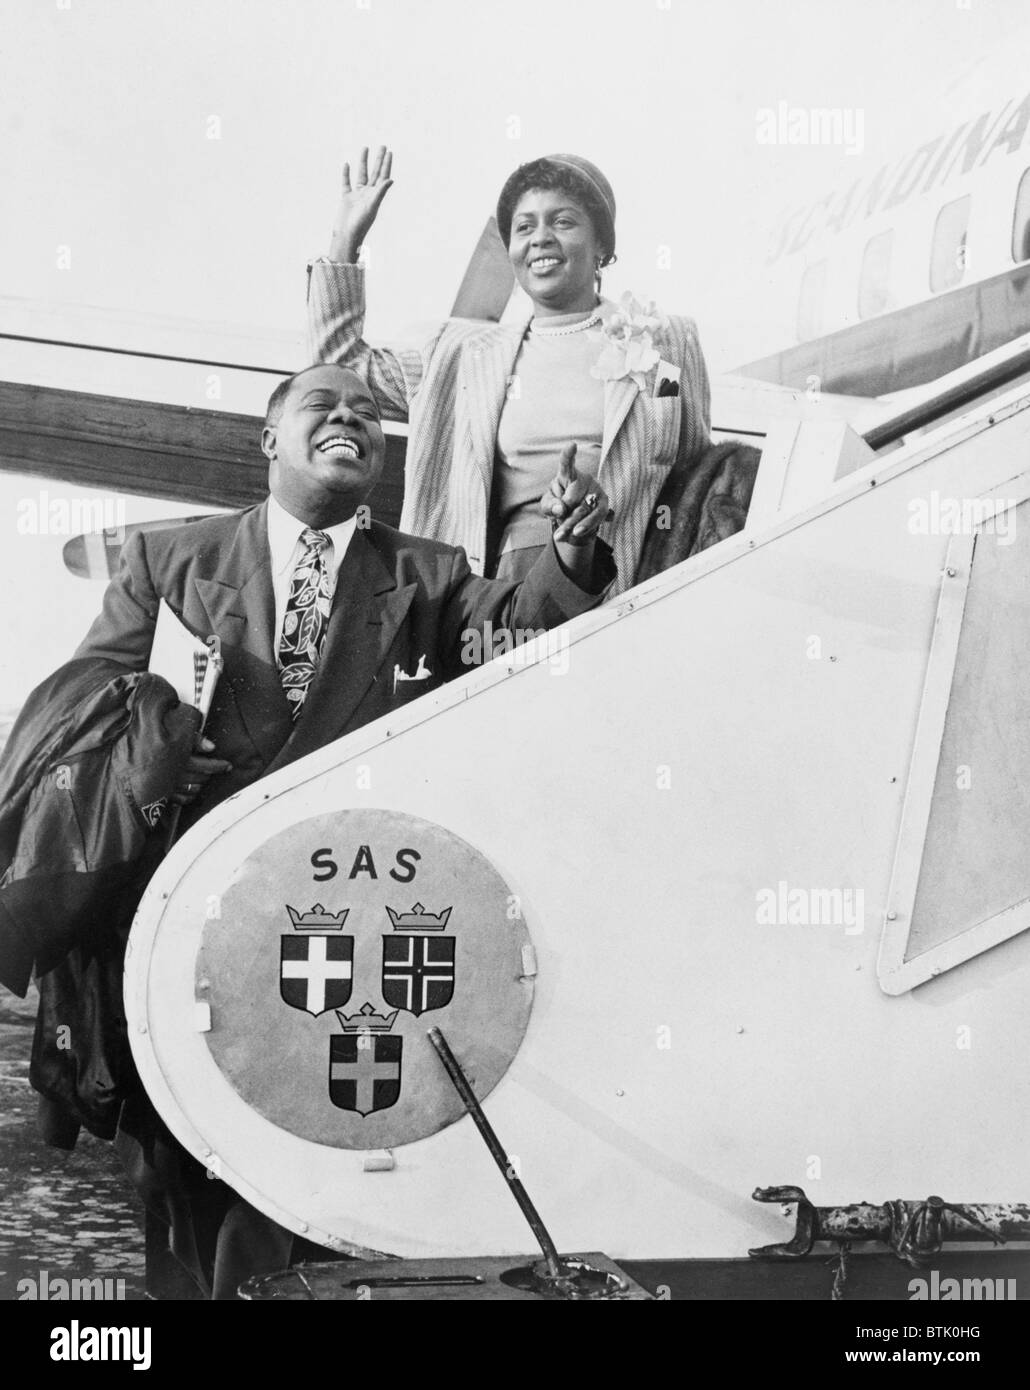 Louis Armstrong (1901-1971), African American Jazz musician, and his wife Lucille boarding airplane for Stockholm. Stock Photo